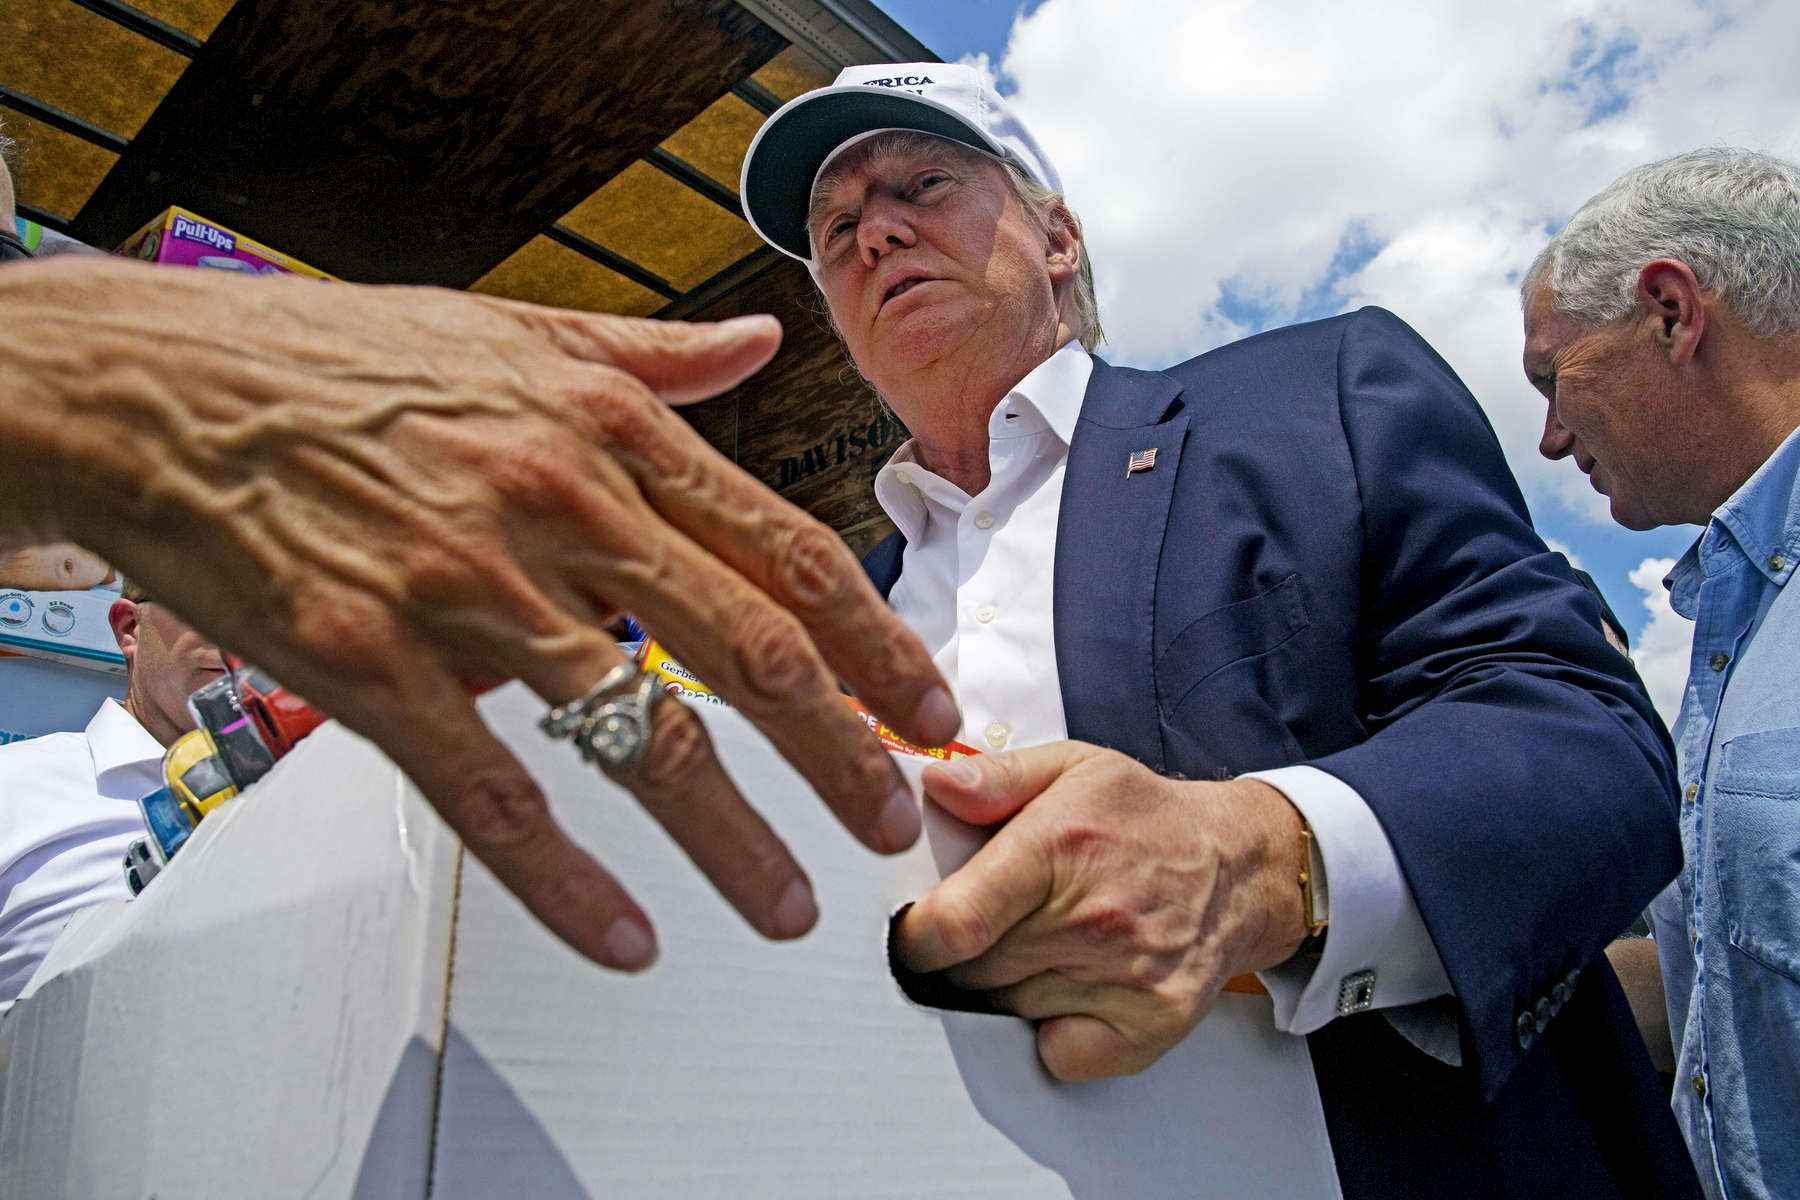 GONZALES, LOUISIANA. Republican presidential candidate Donald Trump, center, and running mate Gov. Mike Pence, right, help to unload supplies for flood victims during a tour of the flood damaged area in Gonzales, La., Friday, Aug. 19, 2016. Trump and Pence traveled to flood-ravaged sections of southern Louisiana to survey the damage that killed at least 13 people and displaced thousands more. (AP Photo/Max Becherer)